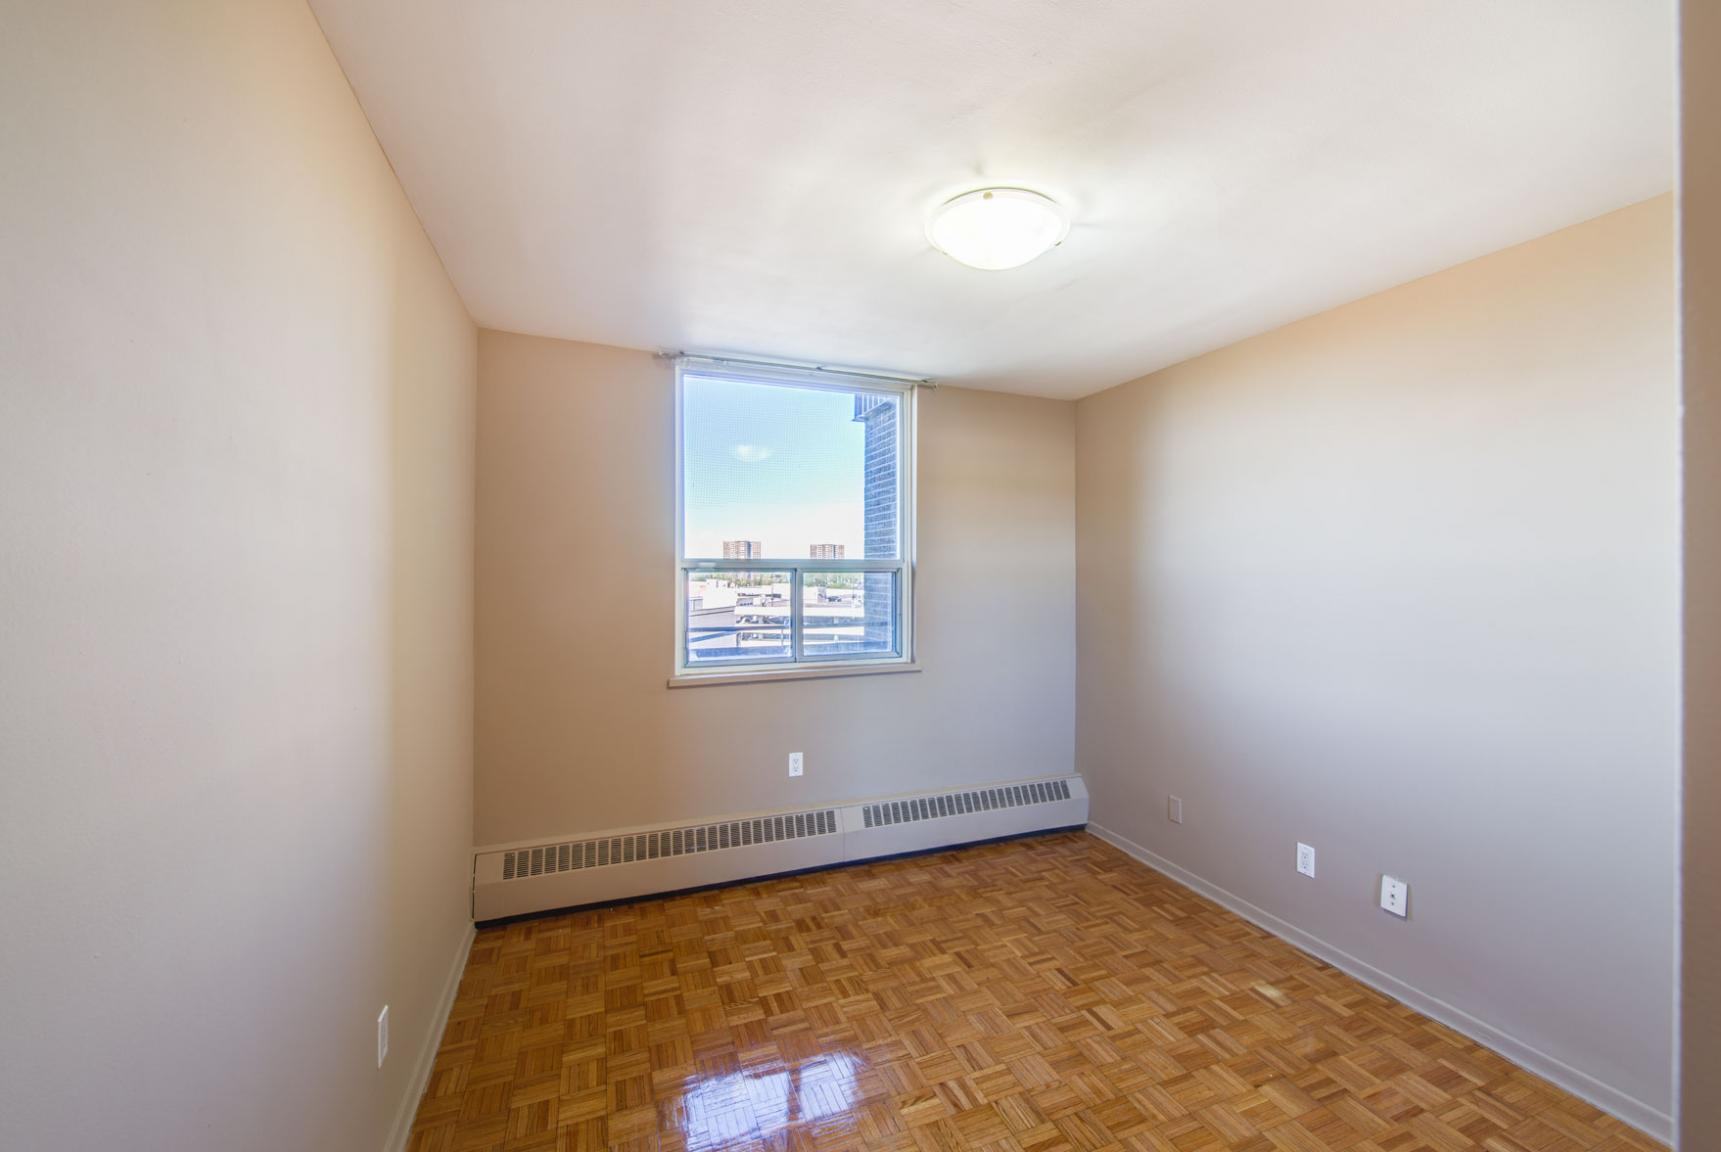 1 bedroom Apartments for rent in North-York at Hunters Lodge - Photo 40 - RentersPages – L400651